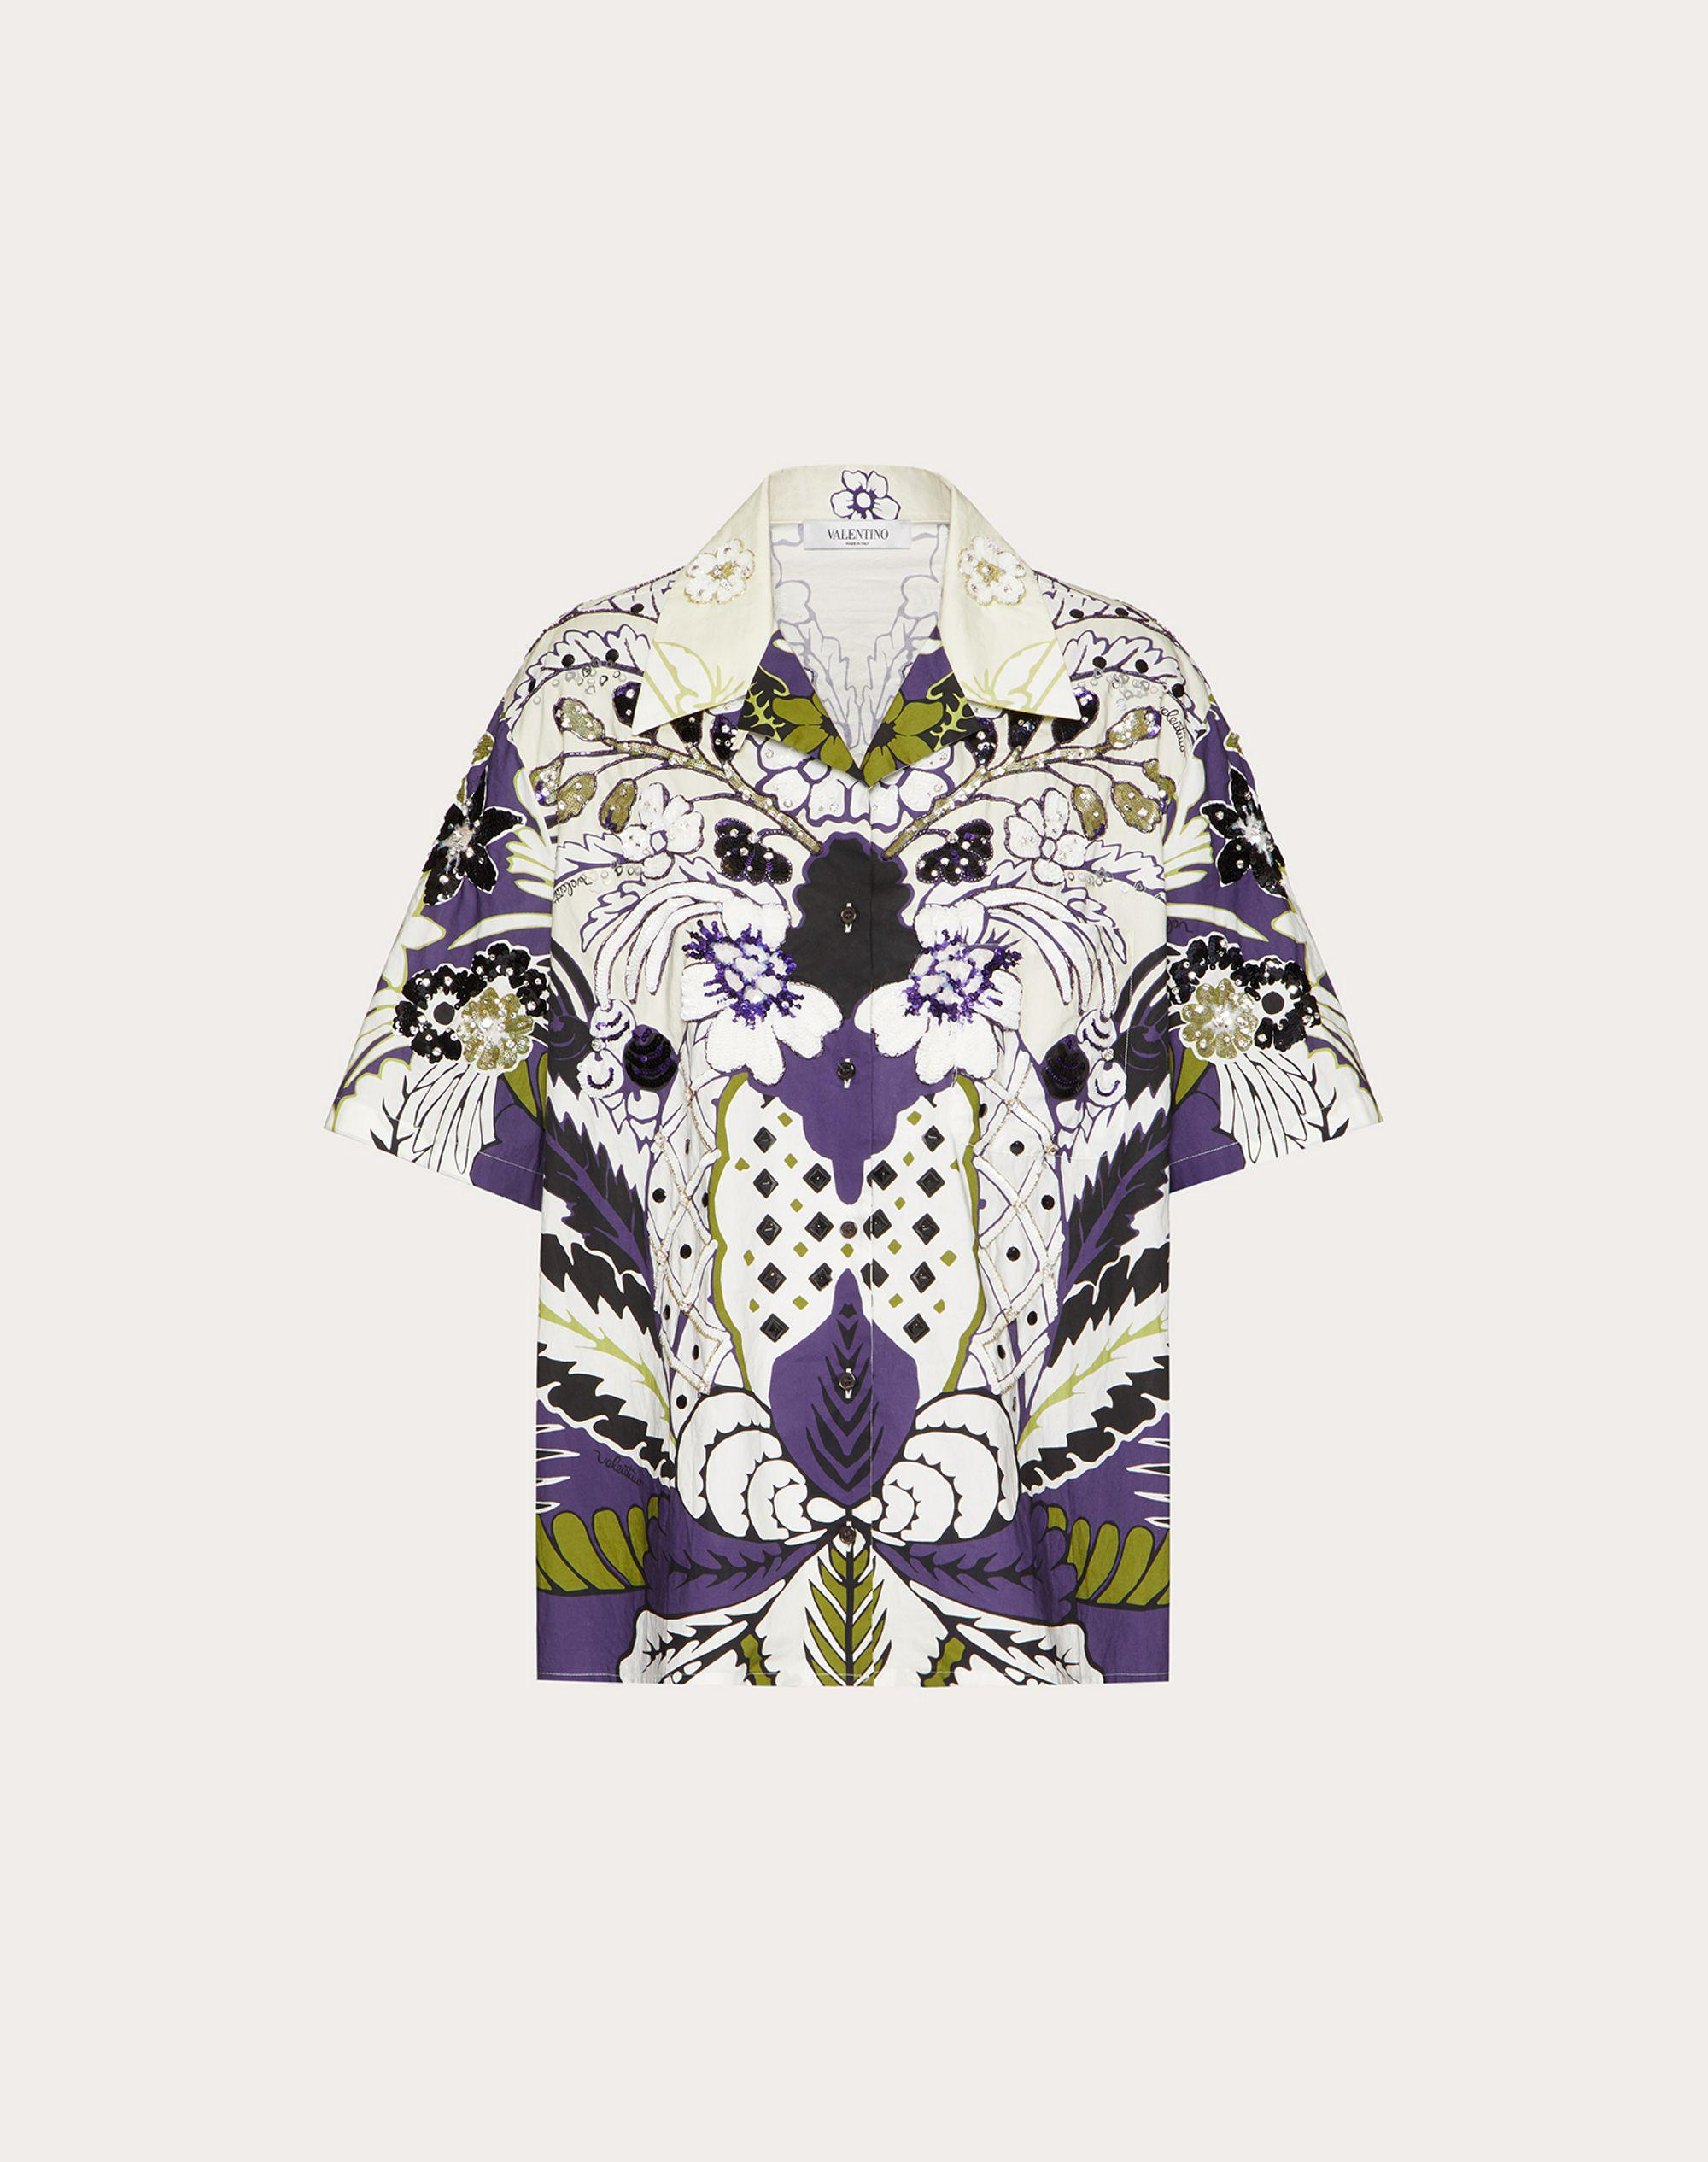 PRINTED AND EMBROIDERED POPLIN BOWLING SHIRT 4